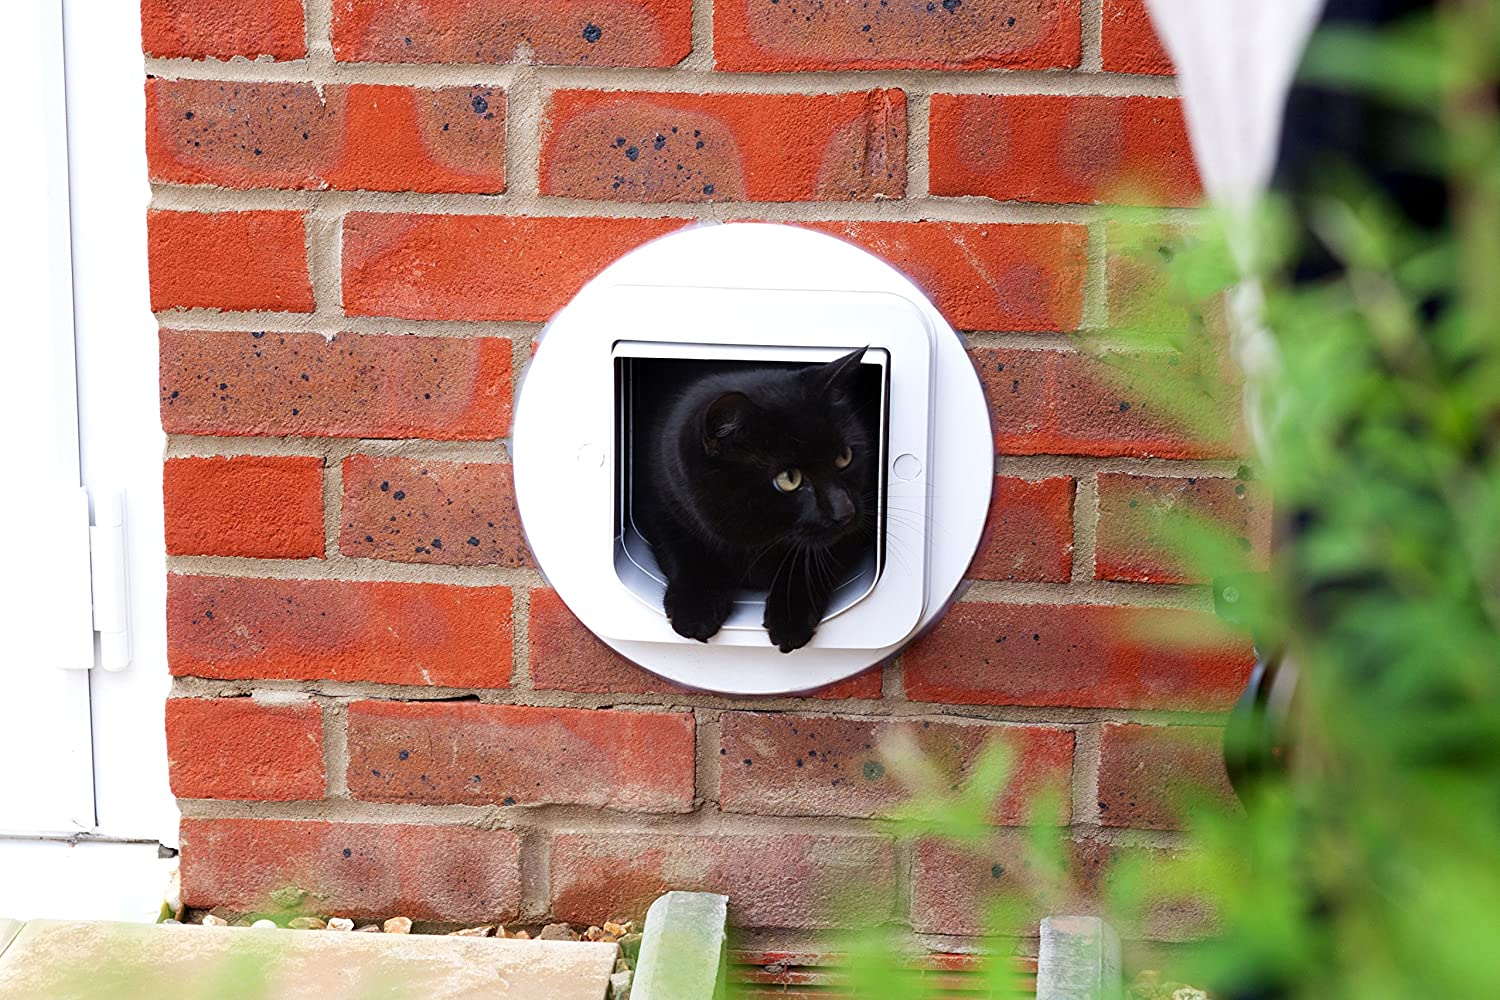 Appearance of SureFlap Microchip Cat Flap